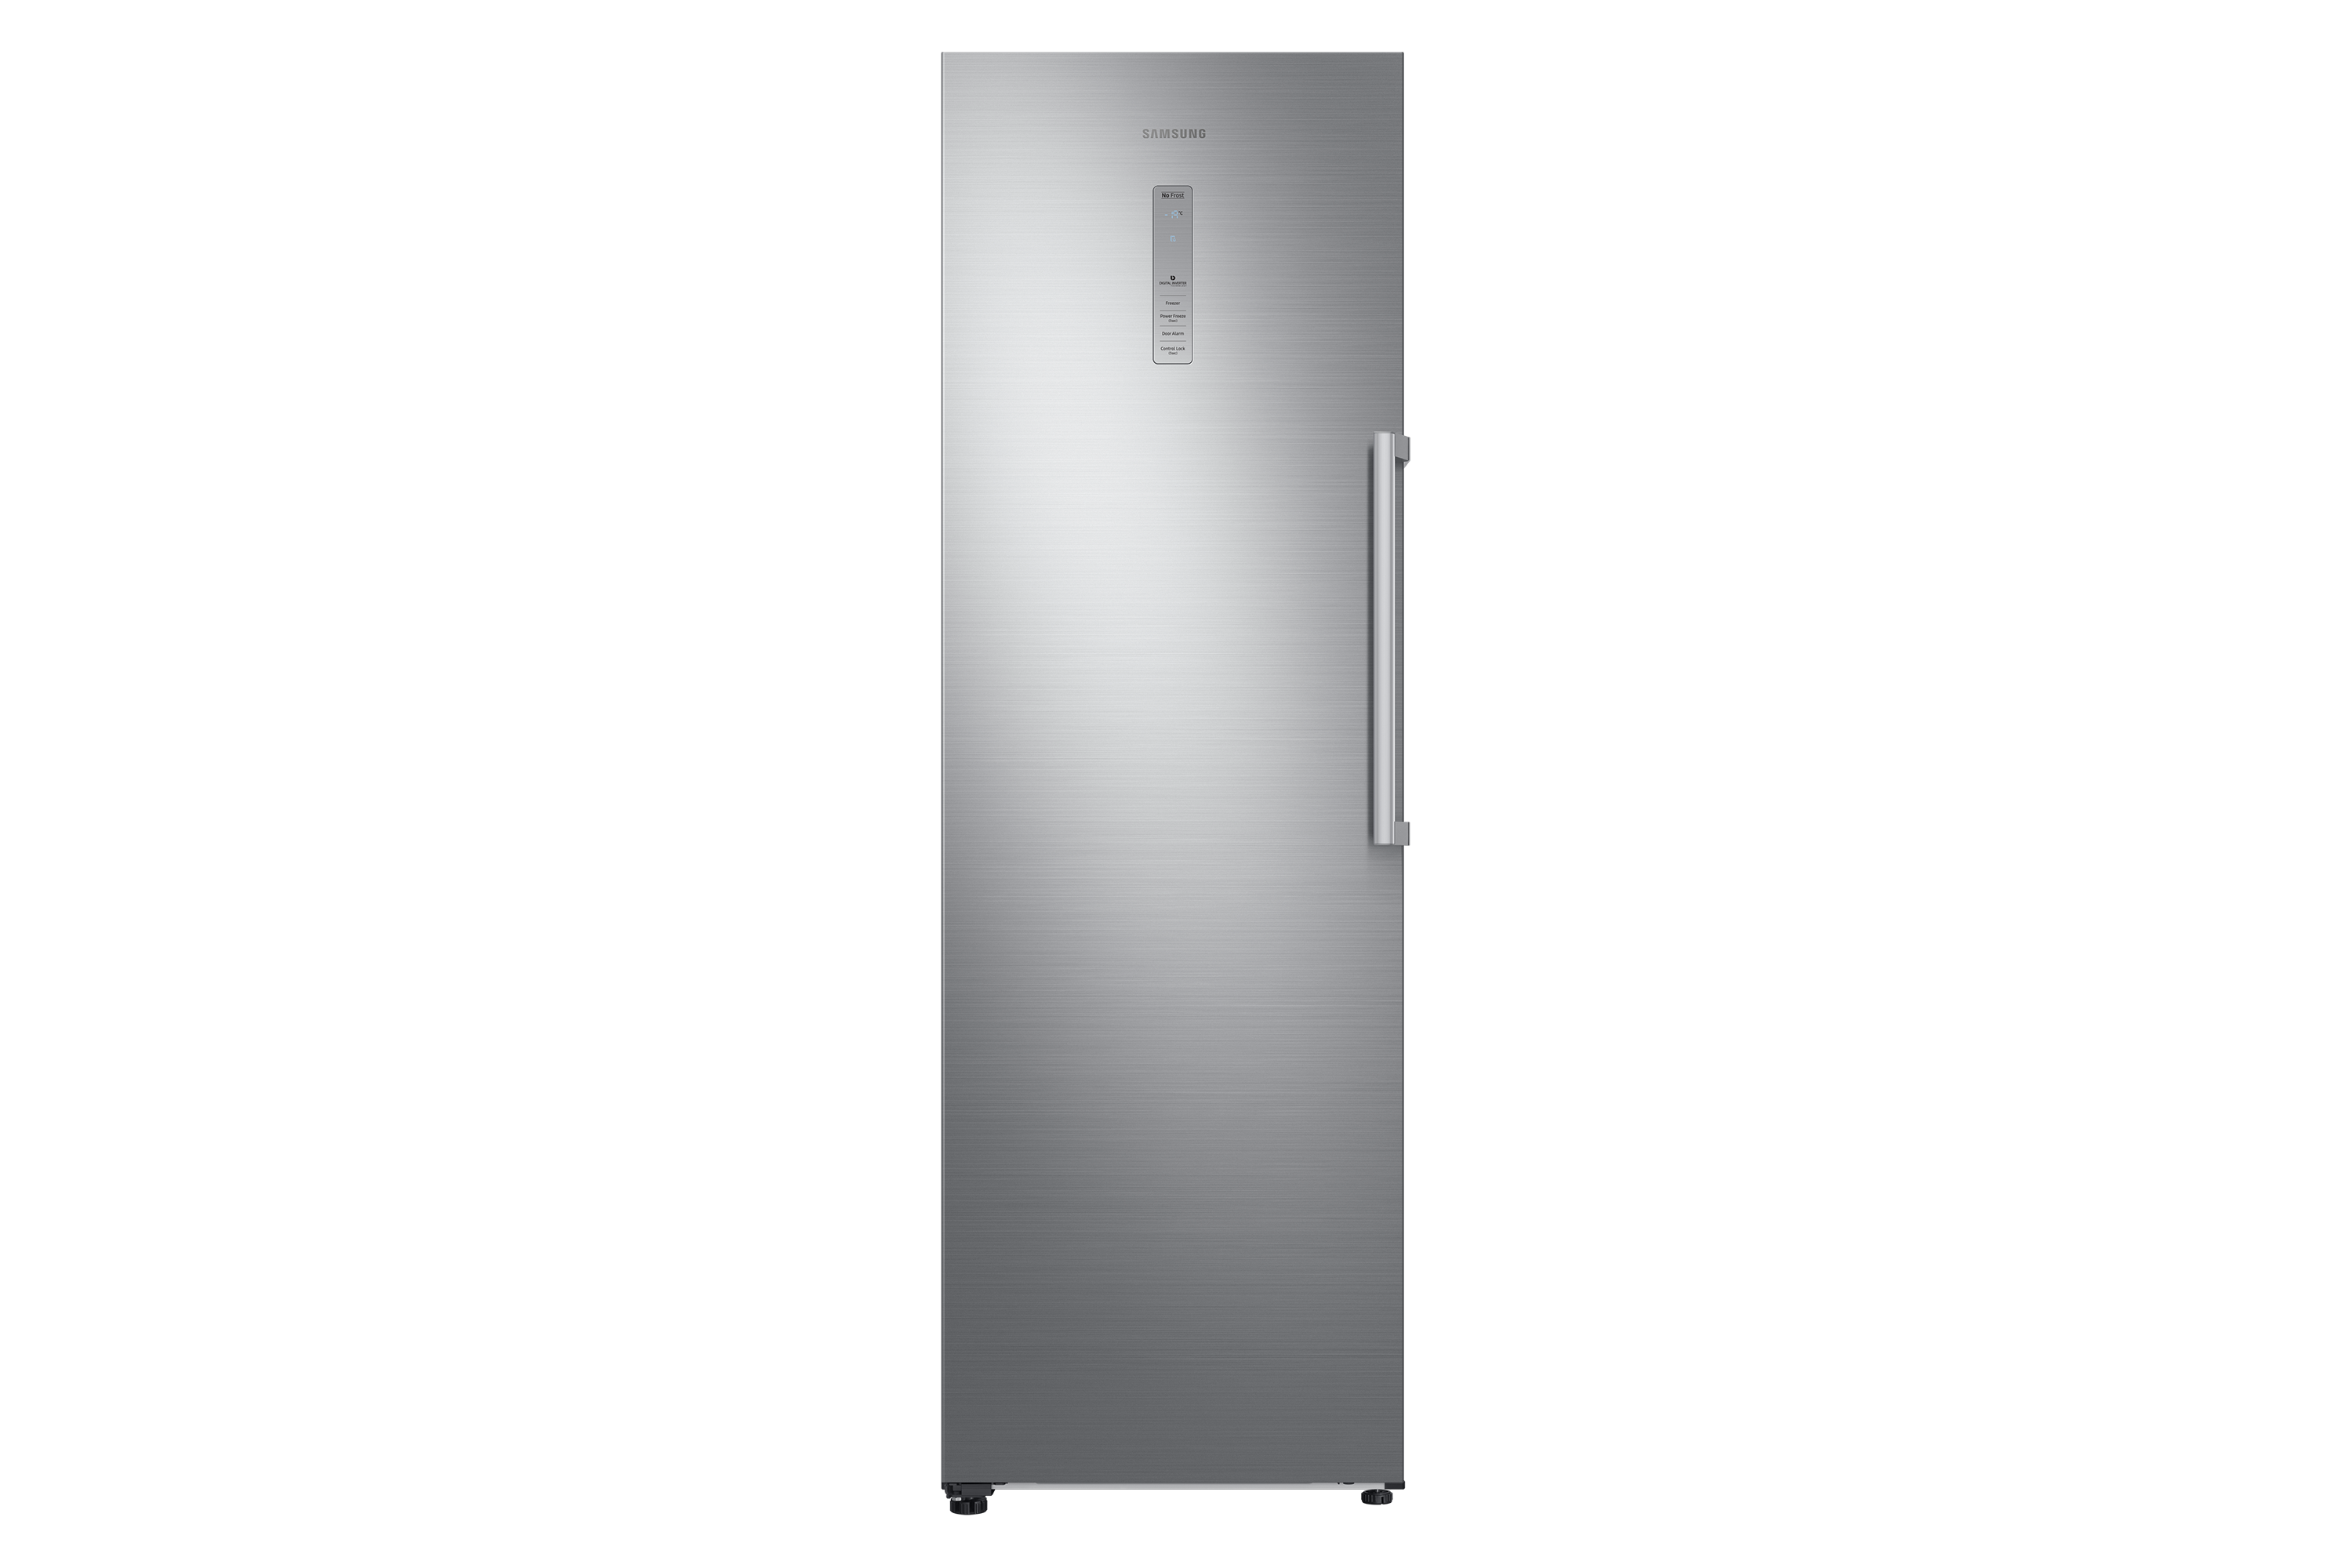 RZ32M71107F Tall 1 Door with All Round Cooling, 315 L